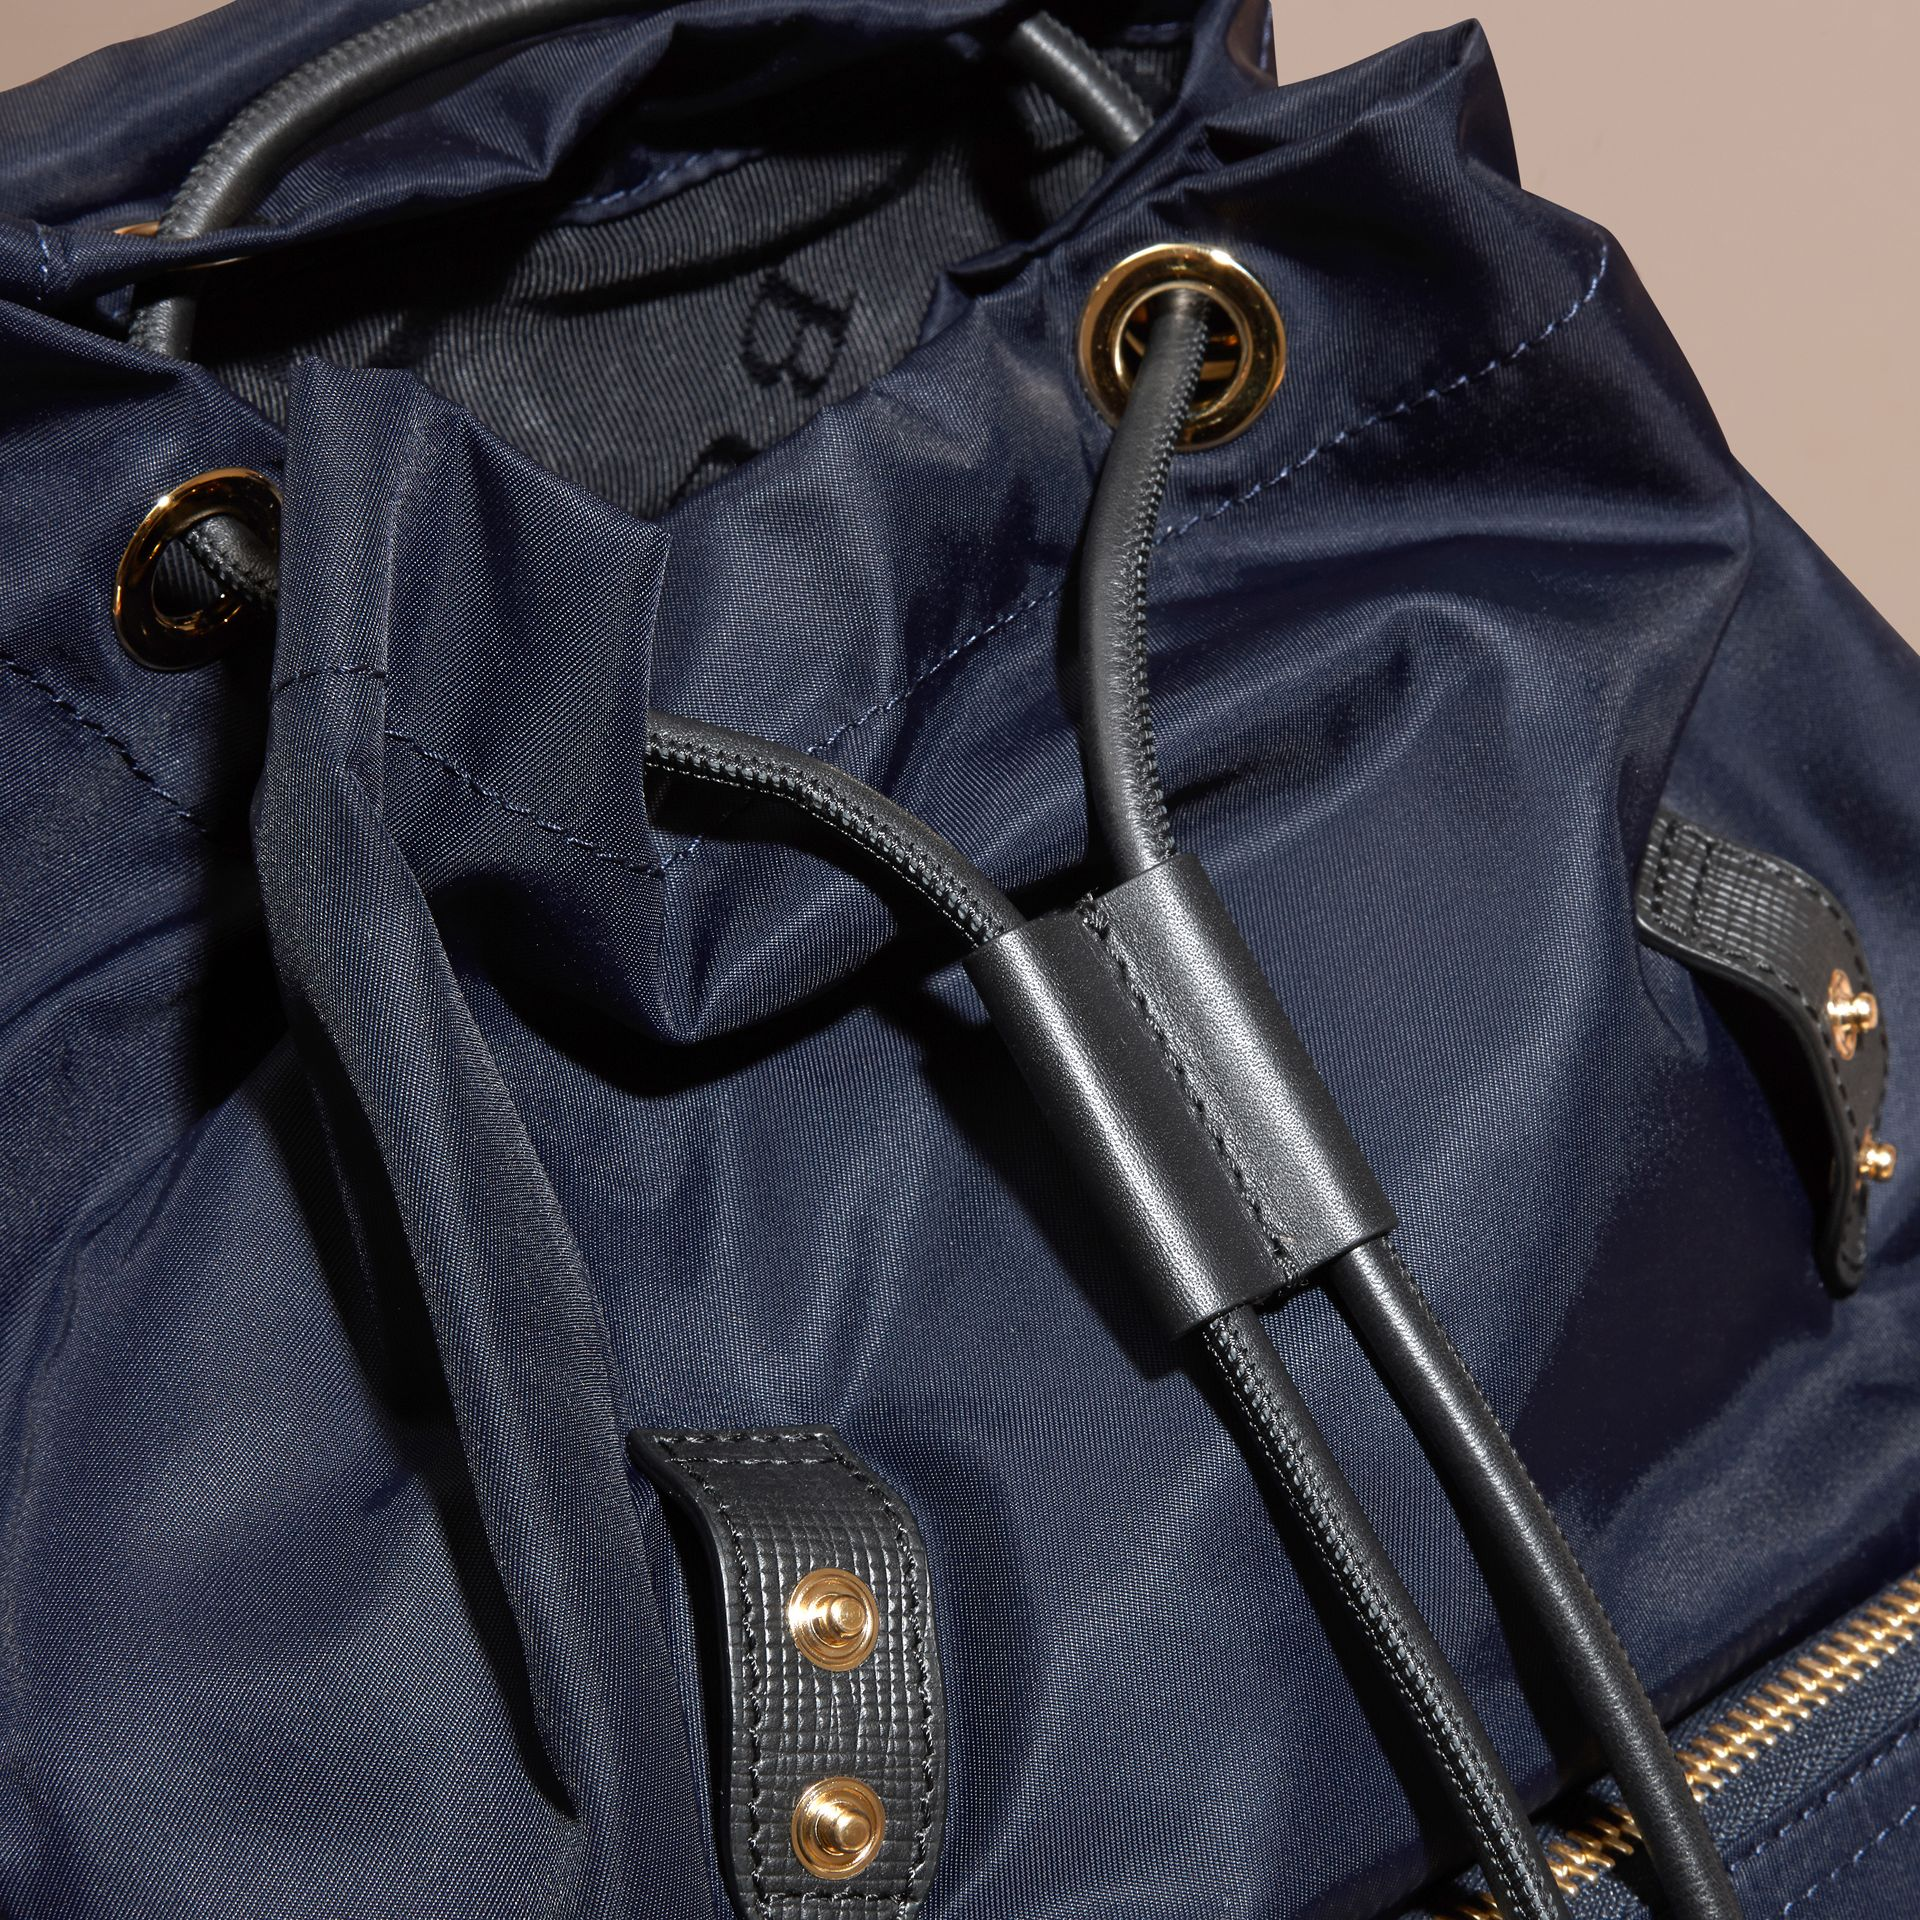 Zaino The Rucksack medio in nylon tecnico e pelle (Blu Inchiostro) - Donna | Burberry - immagine della galleria 5